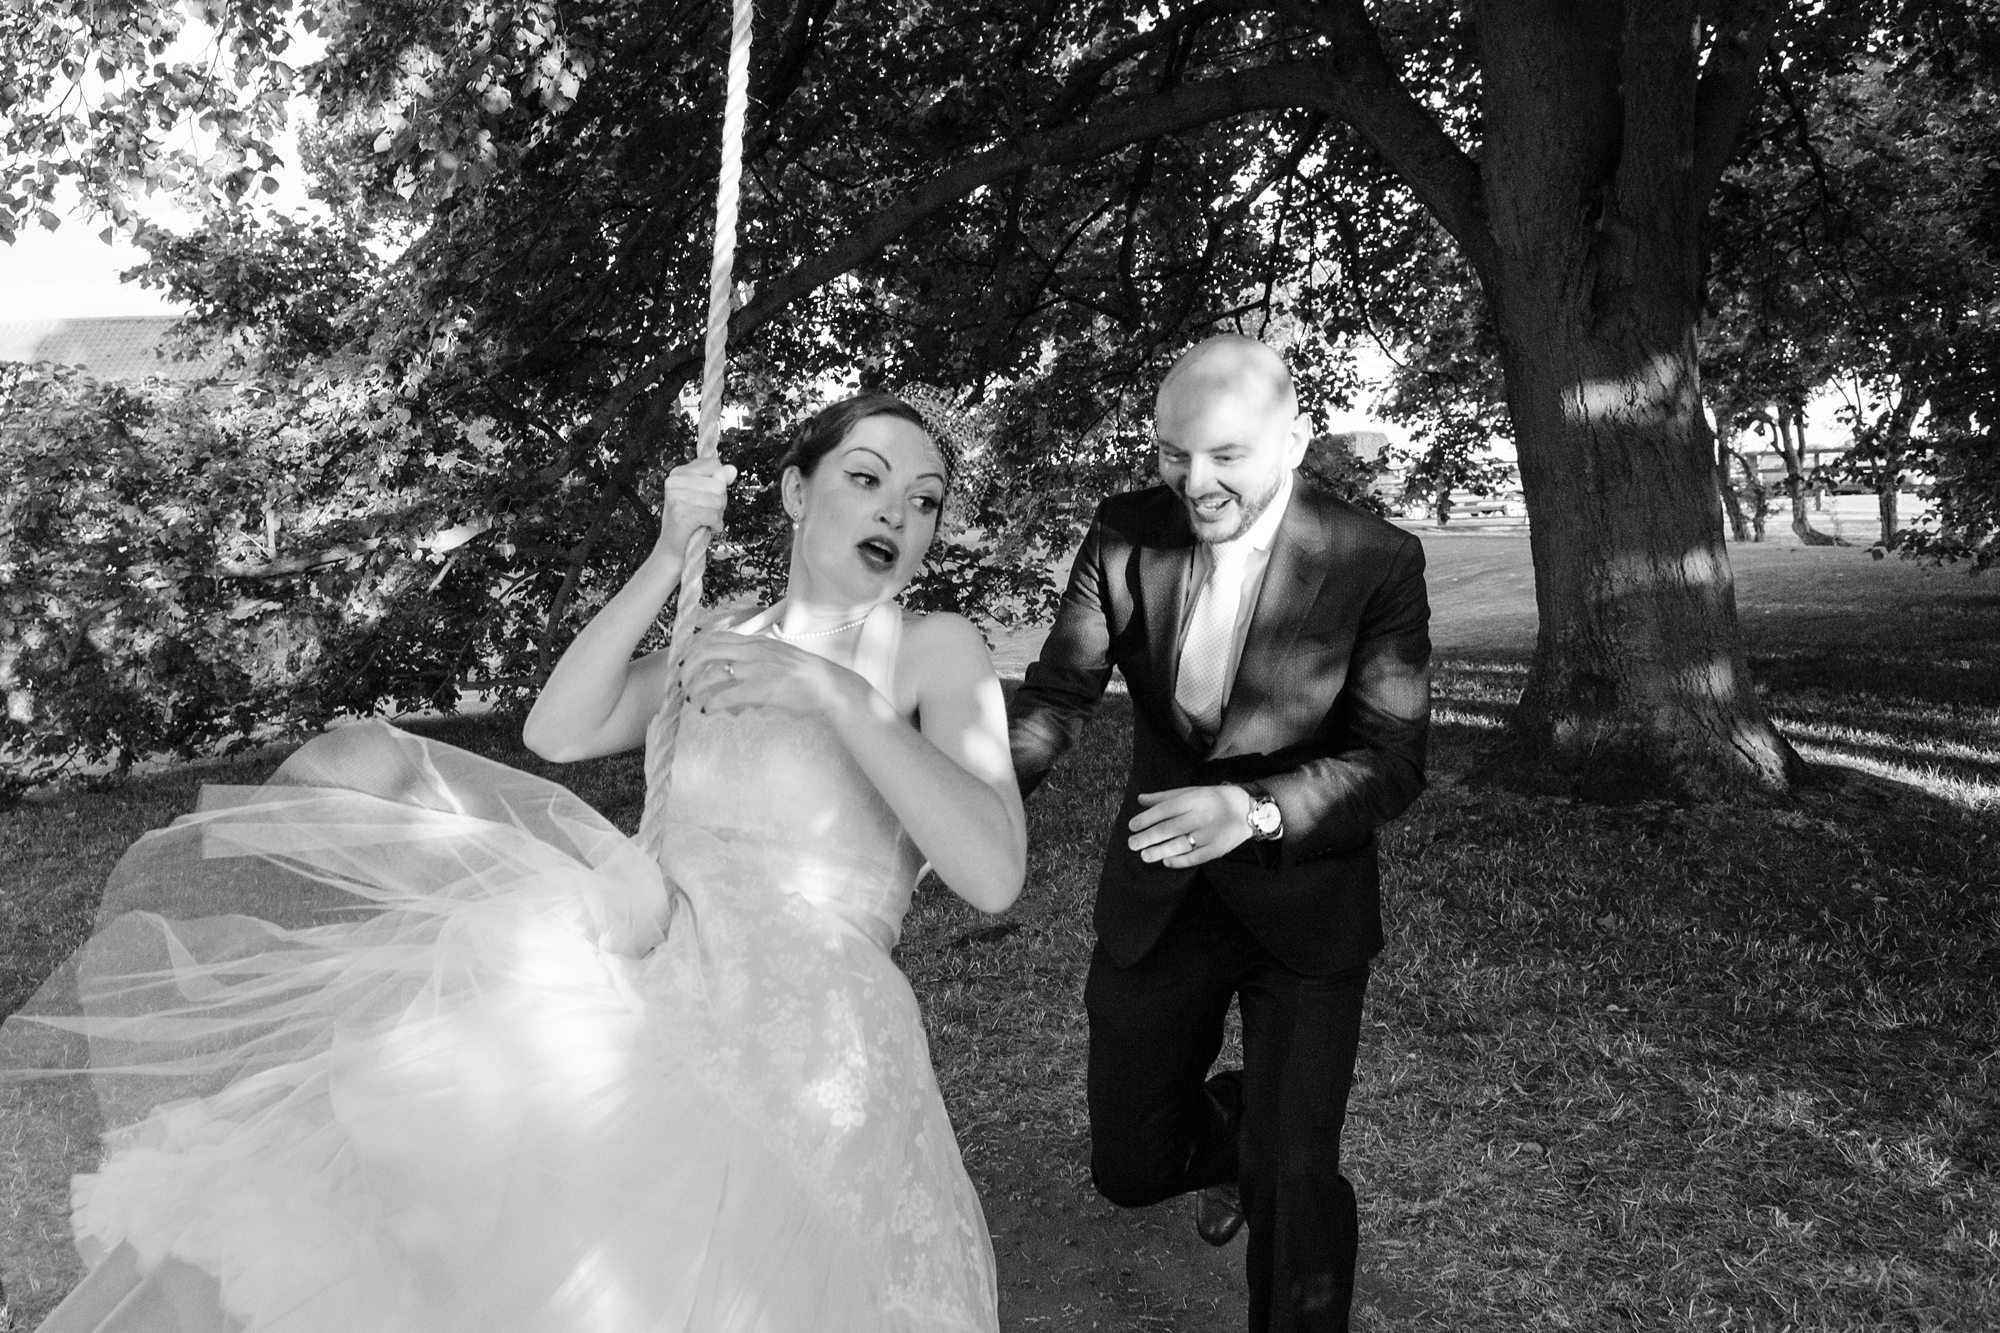 groom pushing bride on tire swing under tree